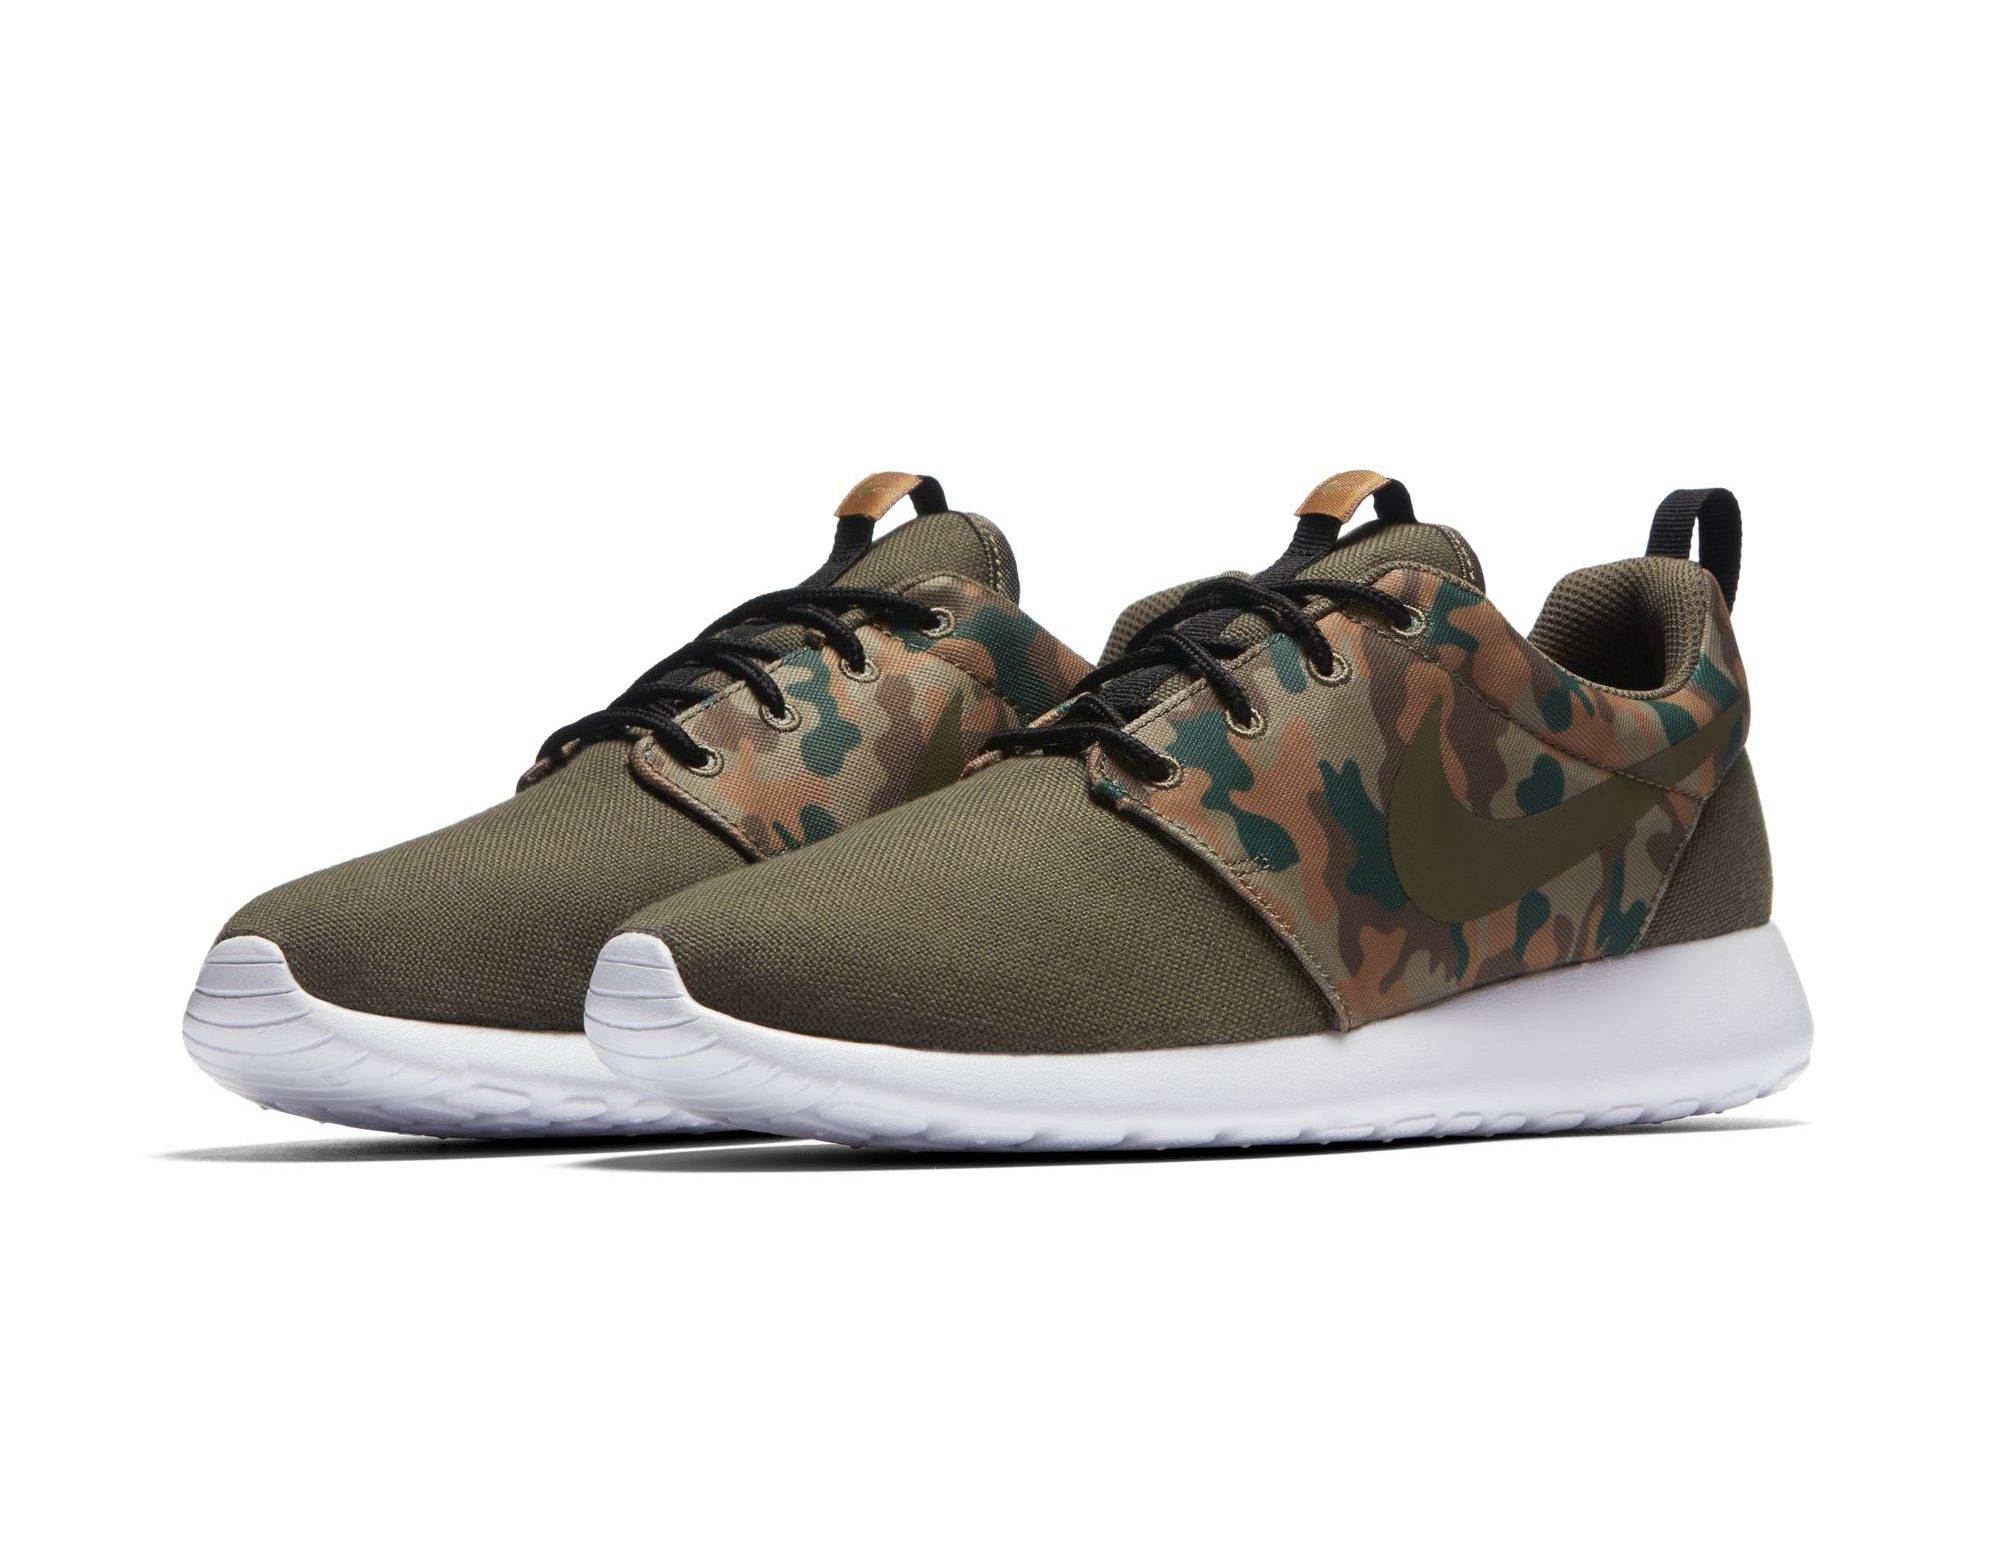 on sale 71bcd e1972 The Latest Nike Roshe One SE Pack Uses Camo for Fall ...